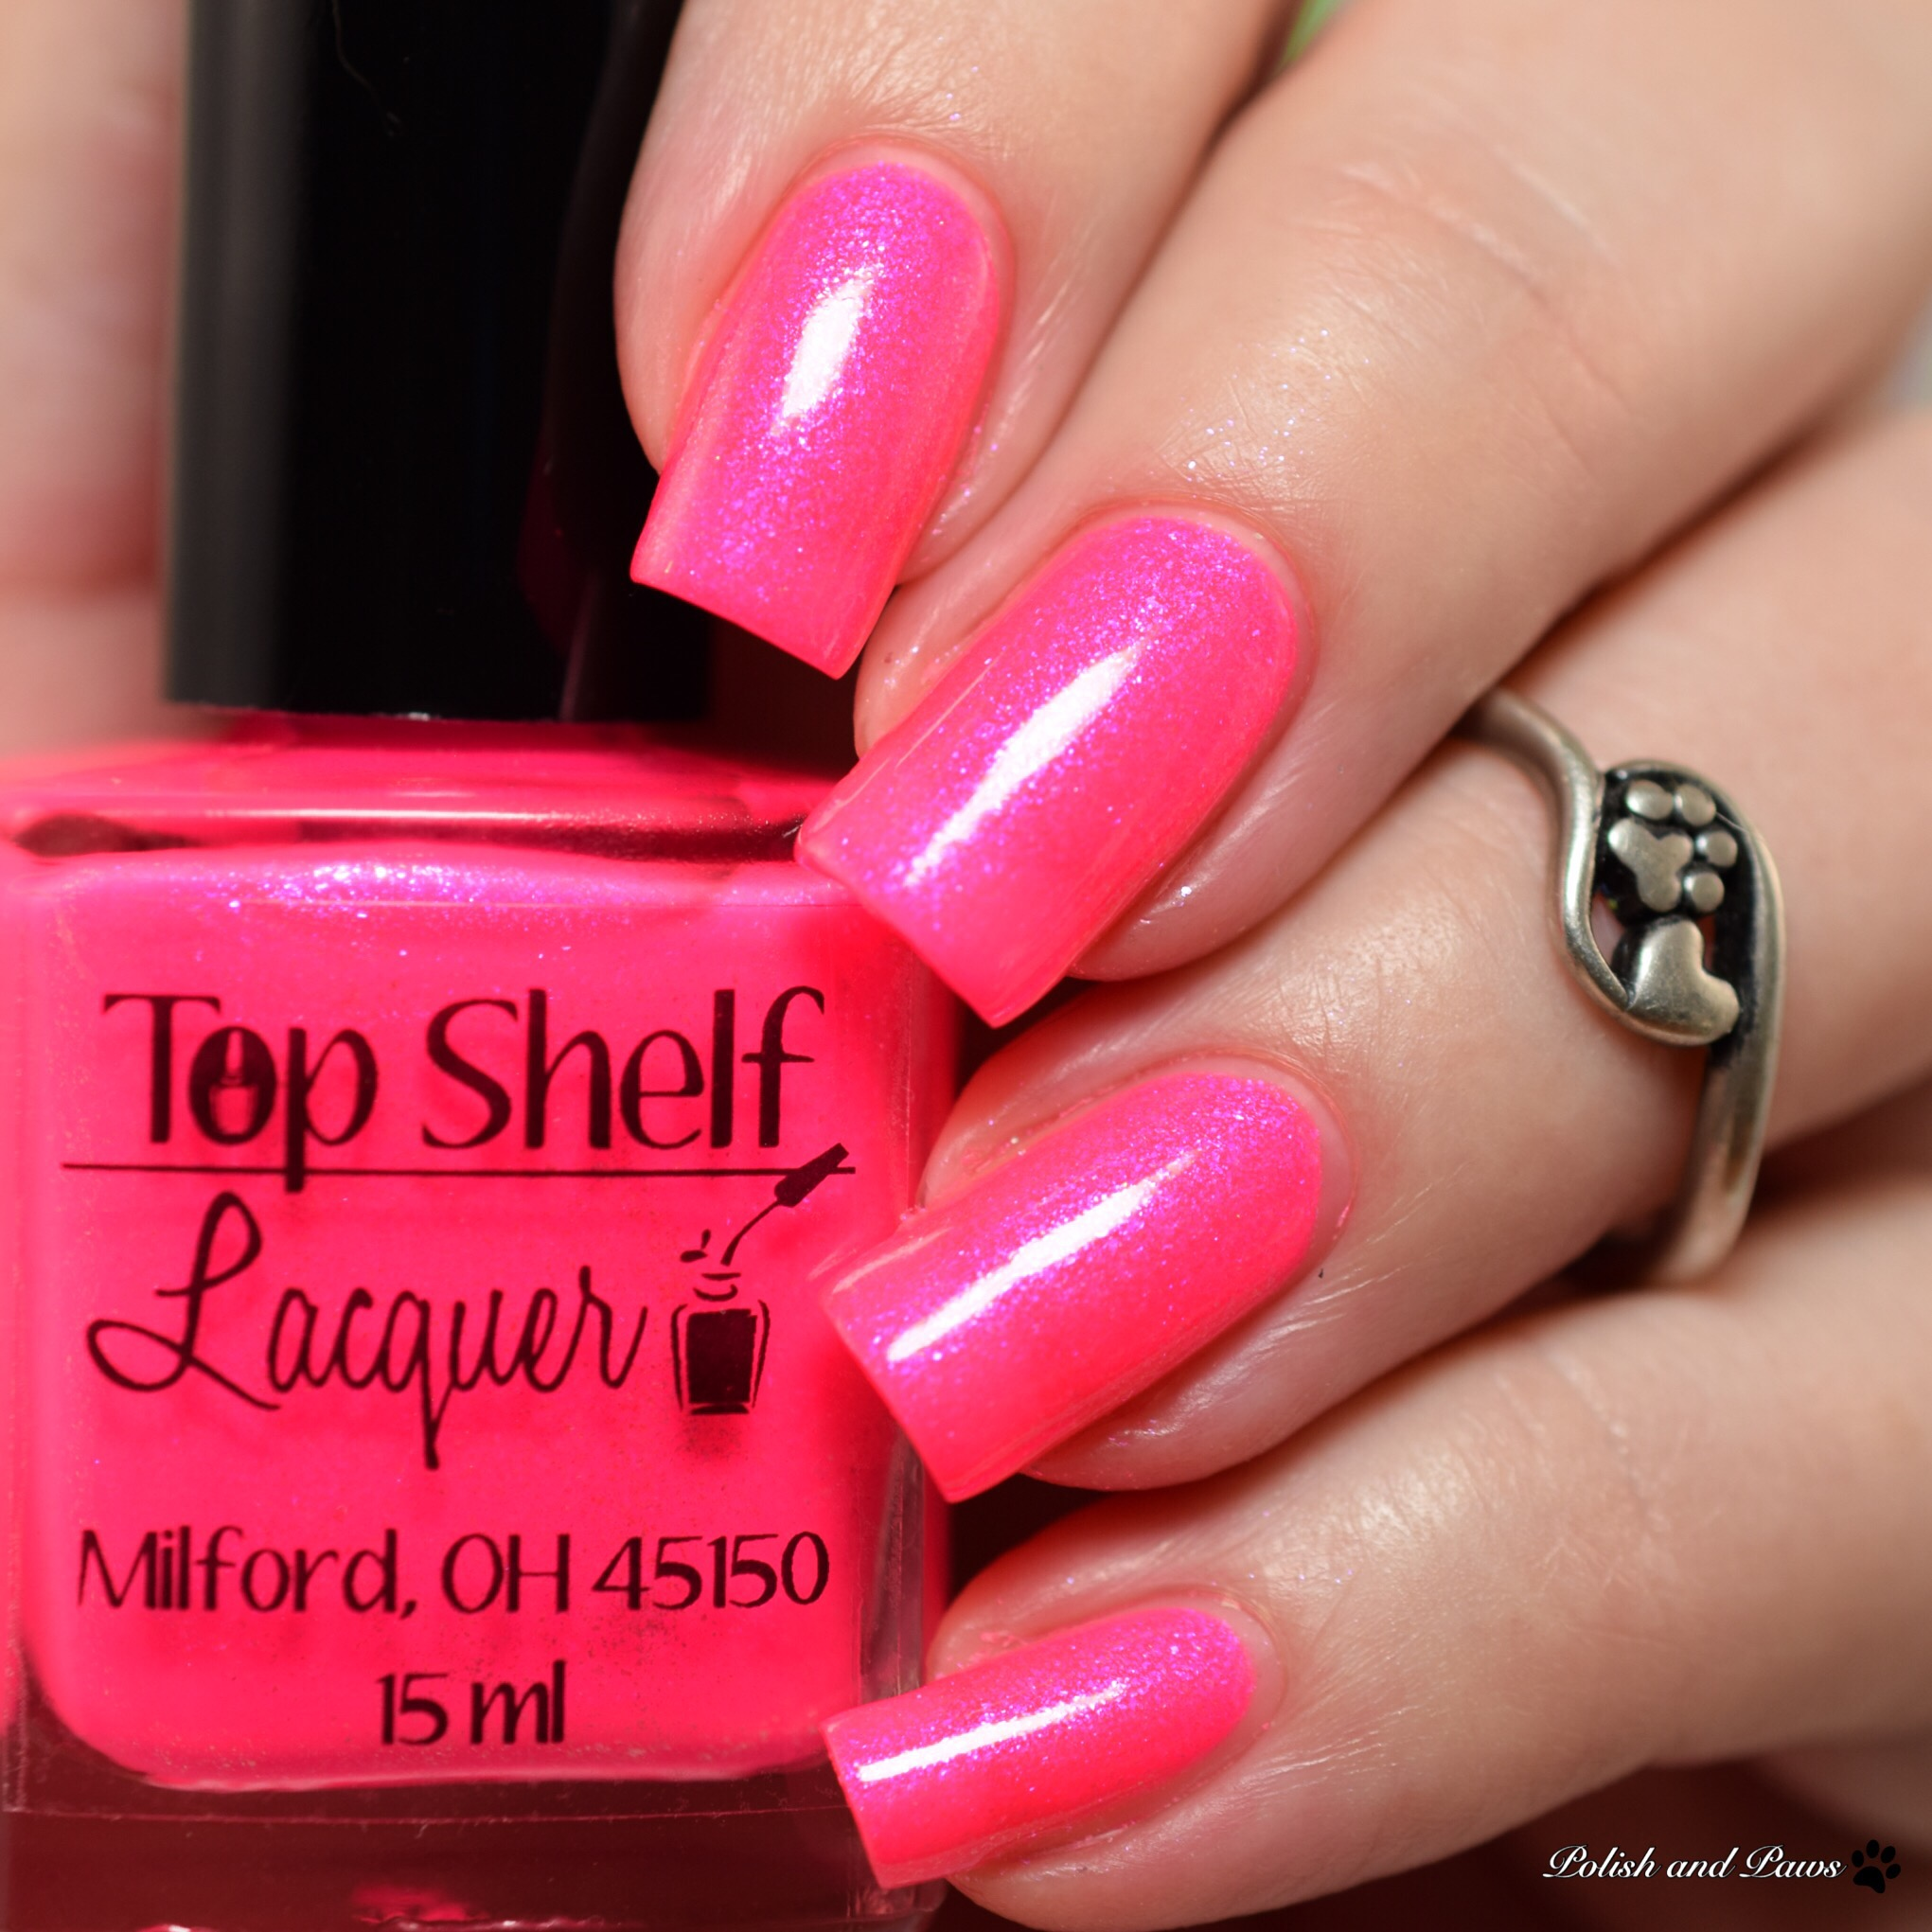 Top Shelf Lacquer Manna's Mystifying Masterpiece